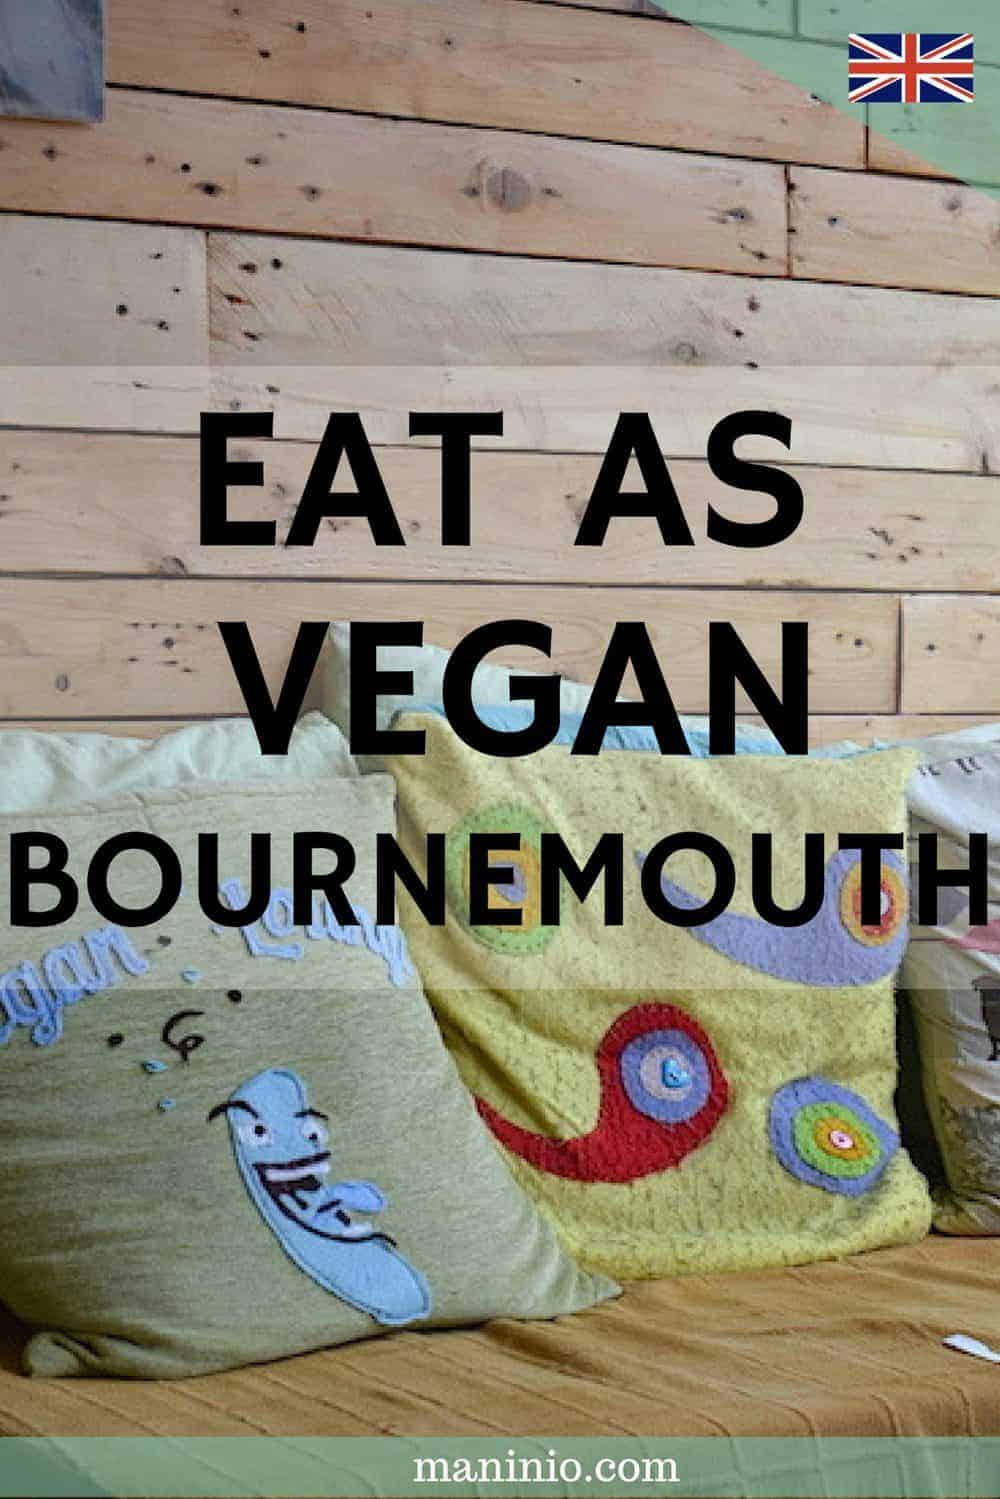 at as Vegan in Bournemouth - Top 5 awesome restaurants. maninio.com